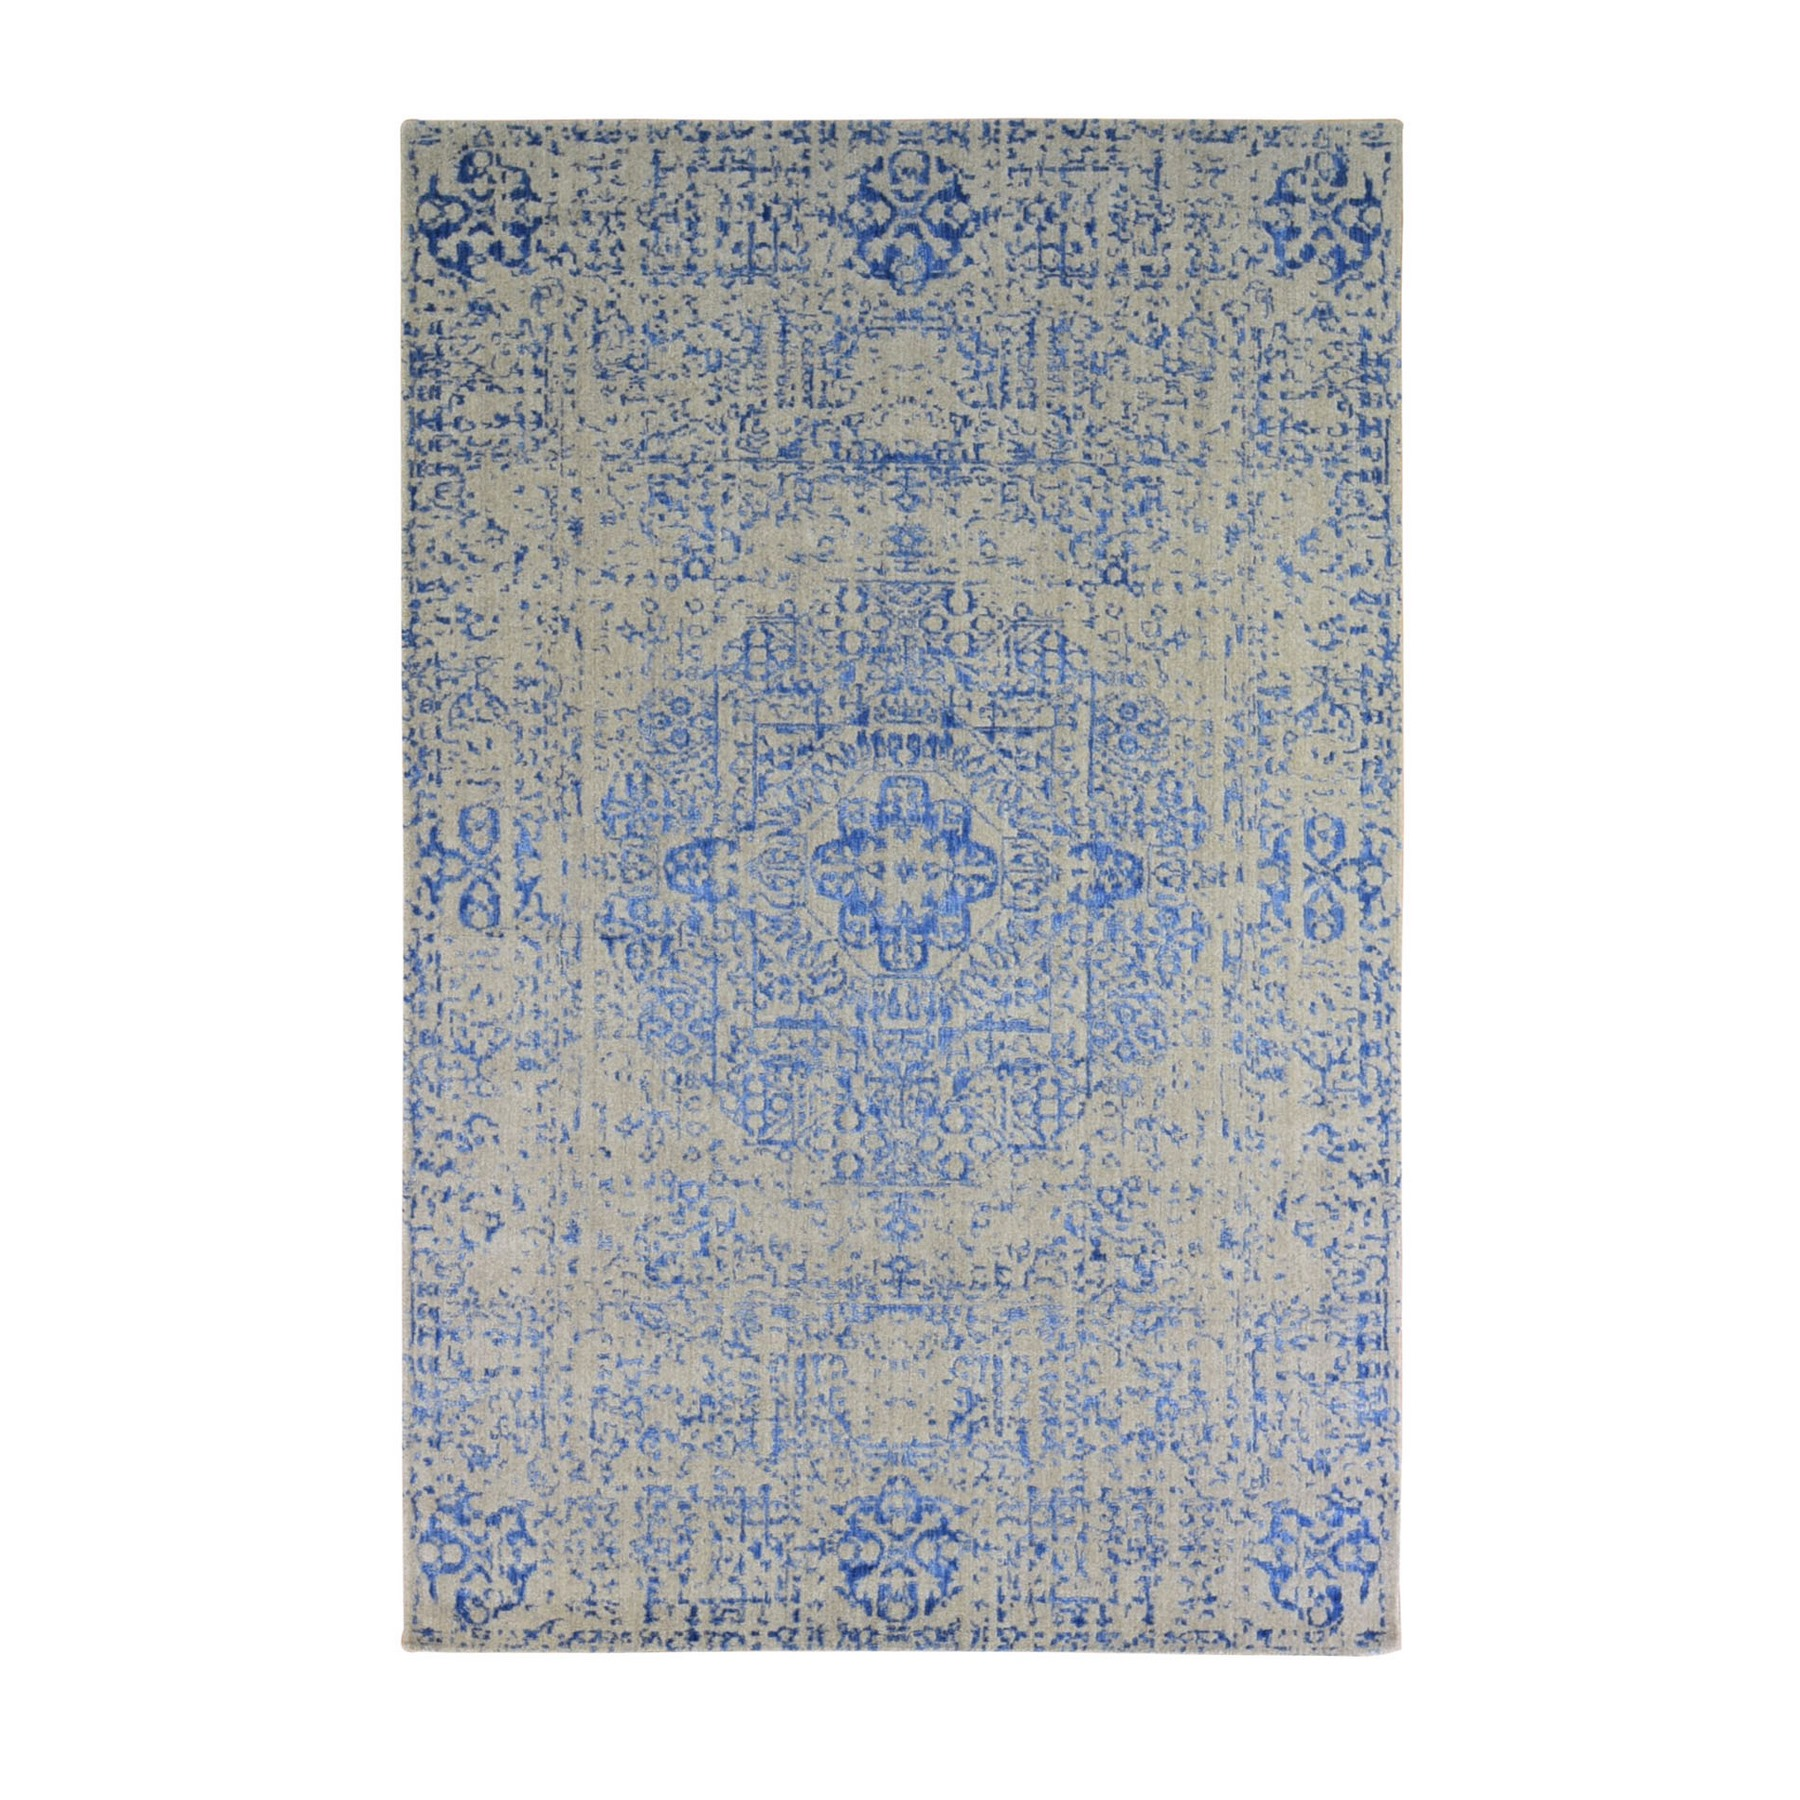 Intricate Collection Hand Loomed Blue Rug No: 1133514